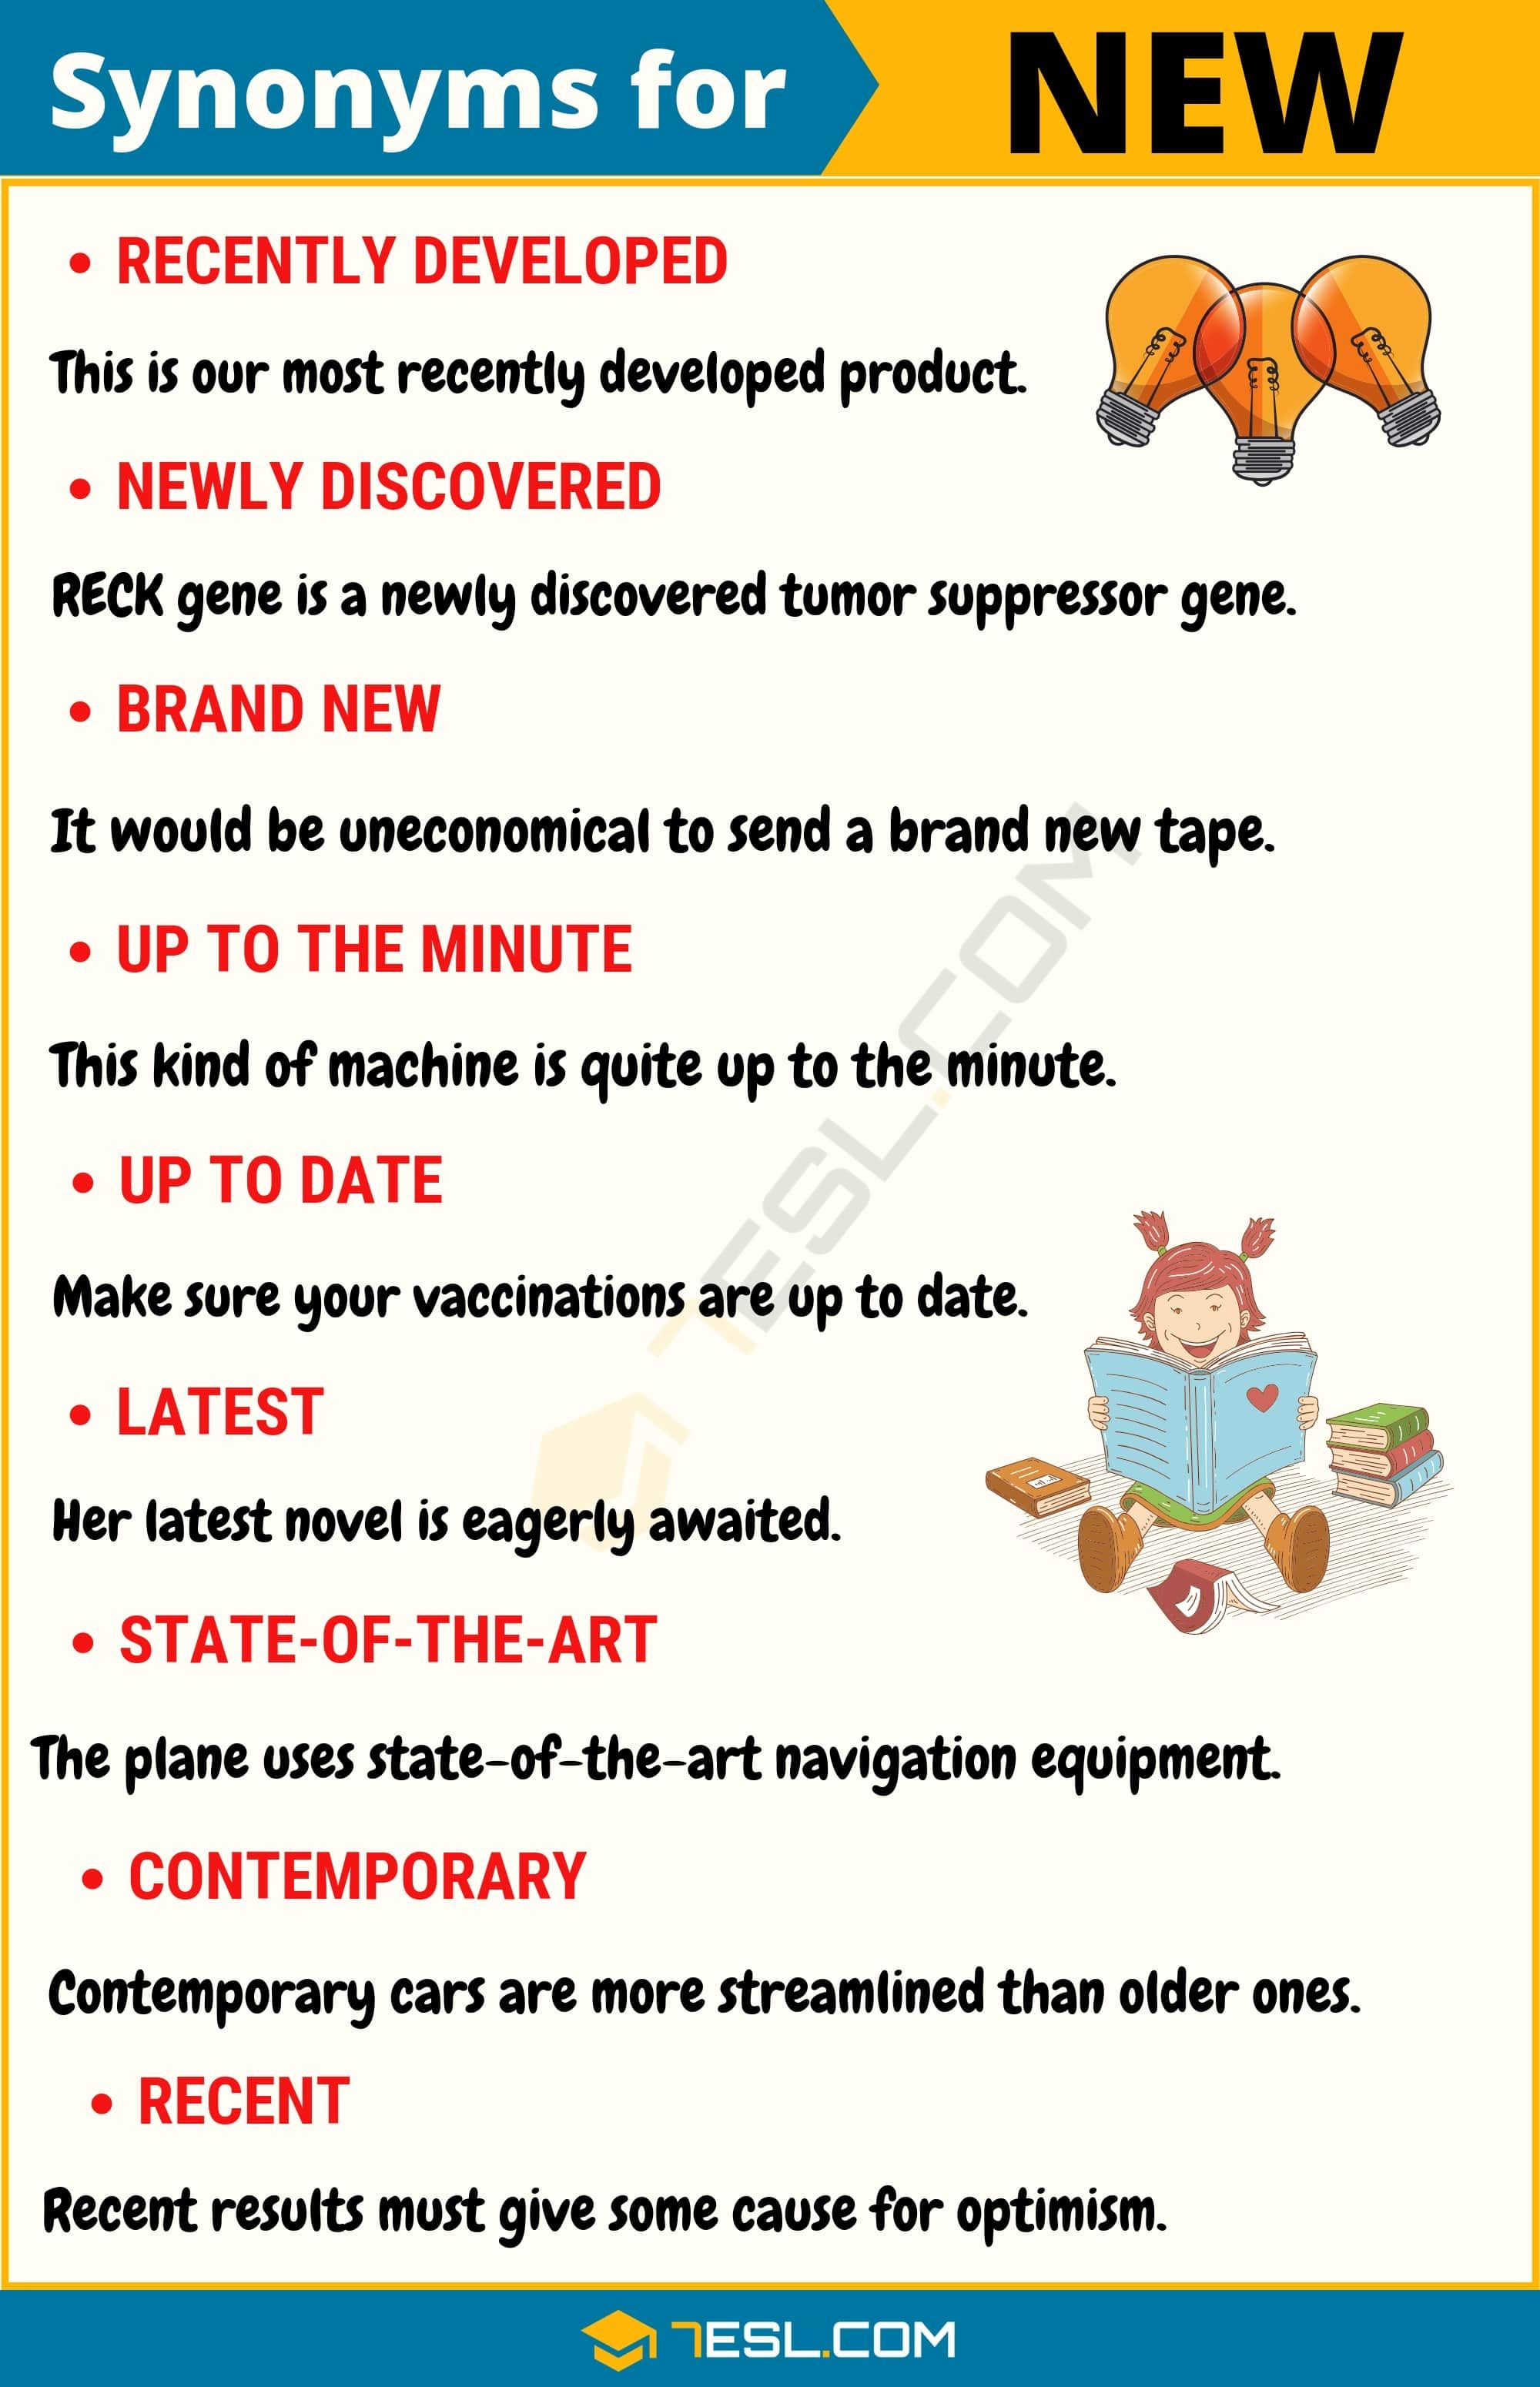 Another Word For New 100 Synonyms For New With Useful Examples 7esl Interesting English Words English Phrases English Words